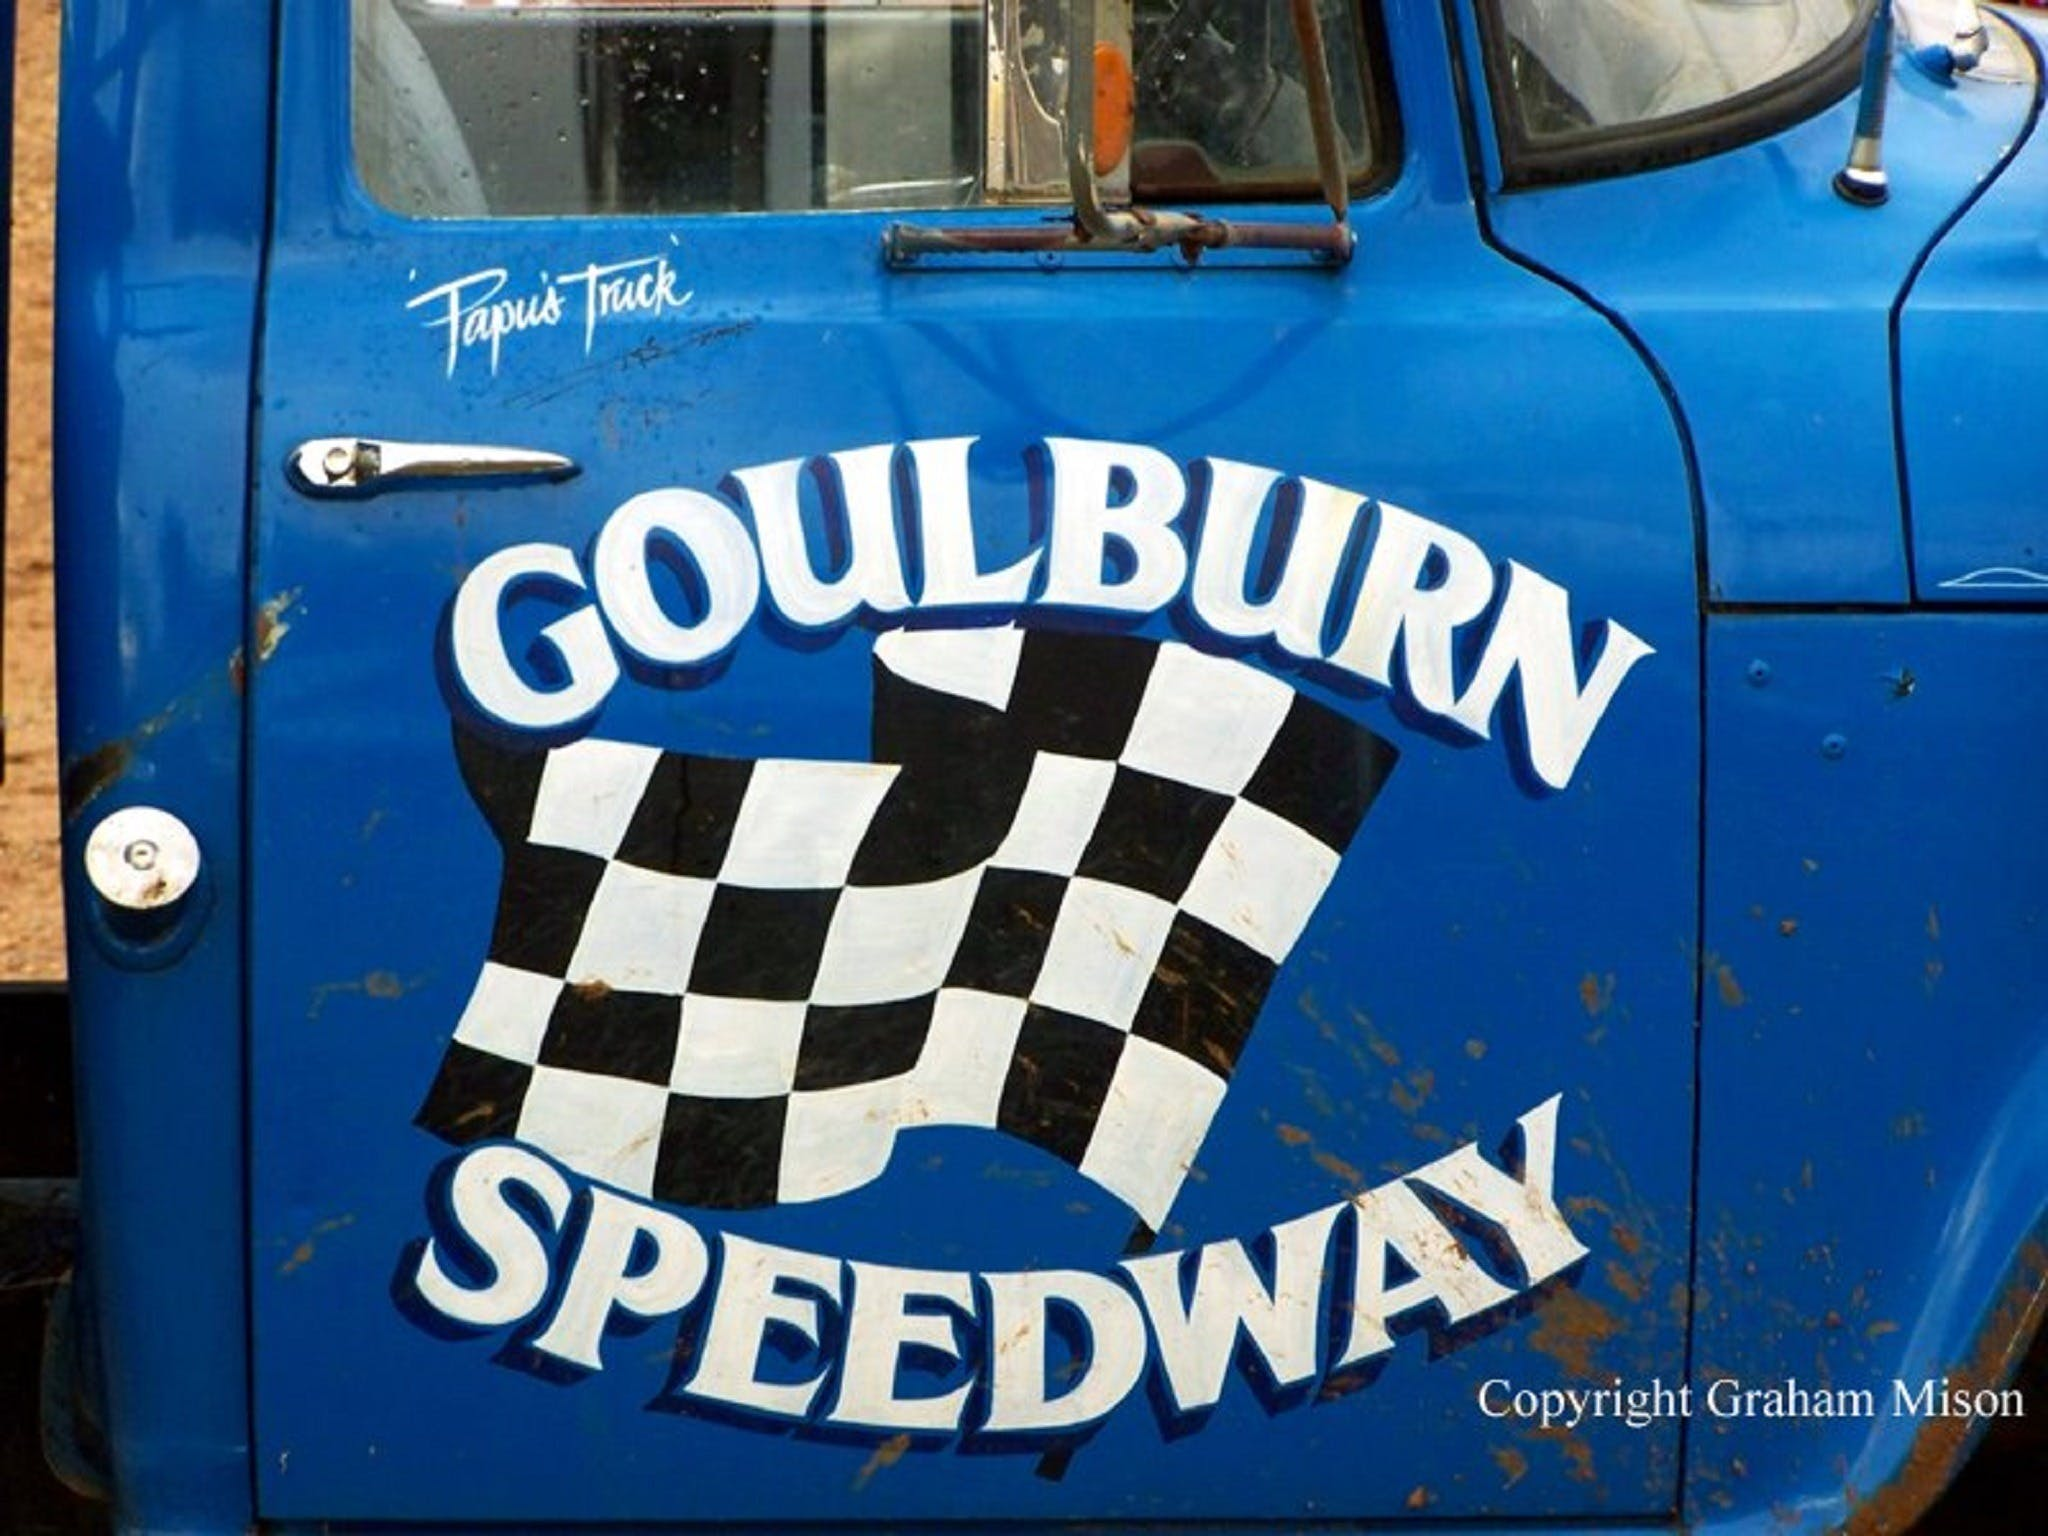 50 years of racing at Goulburn Speedway - New South Wales Tourism